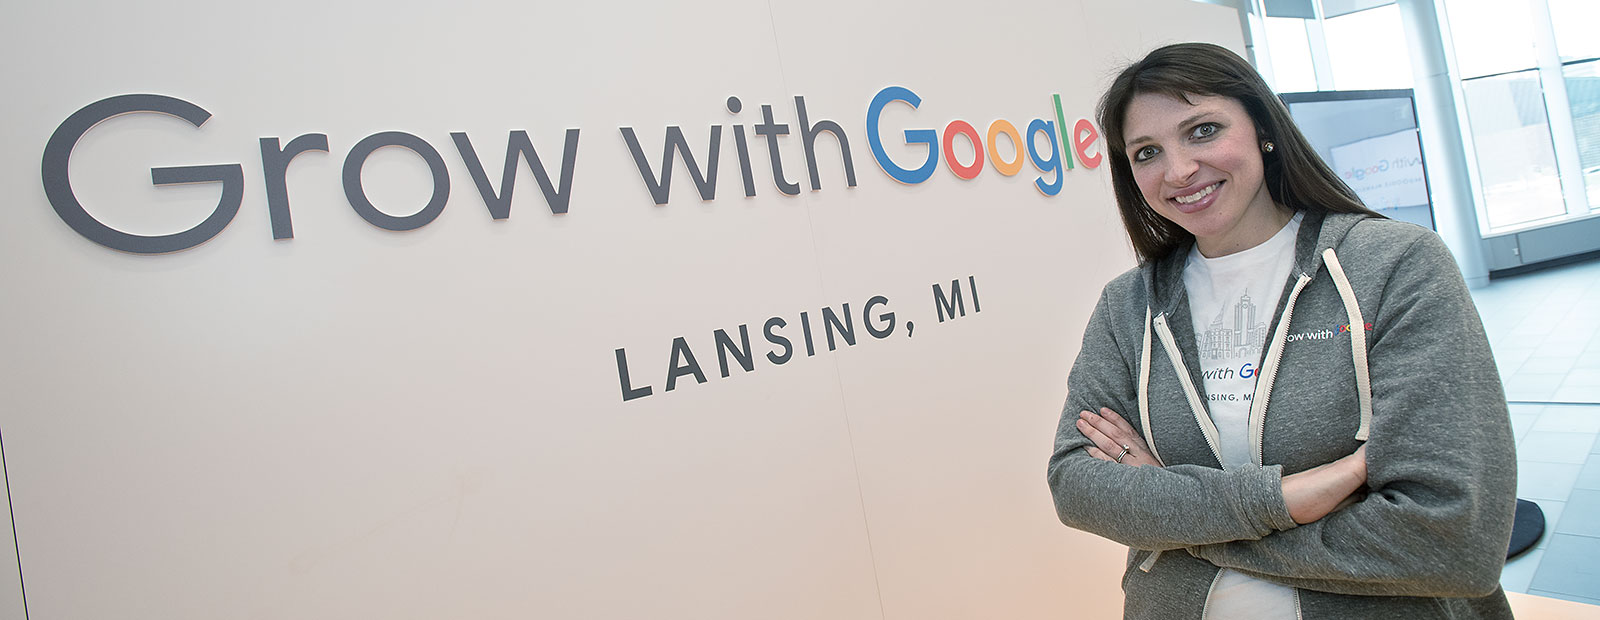 Emily Hanley of Google at the Grow with Google event in Lansing - Photo Dave Trumpie